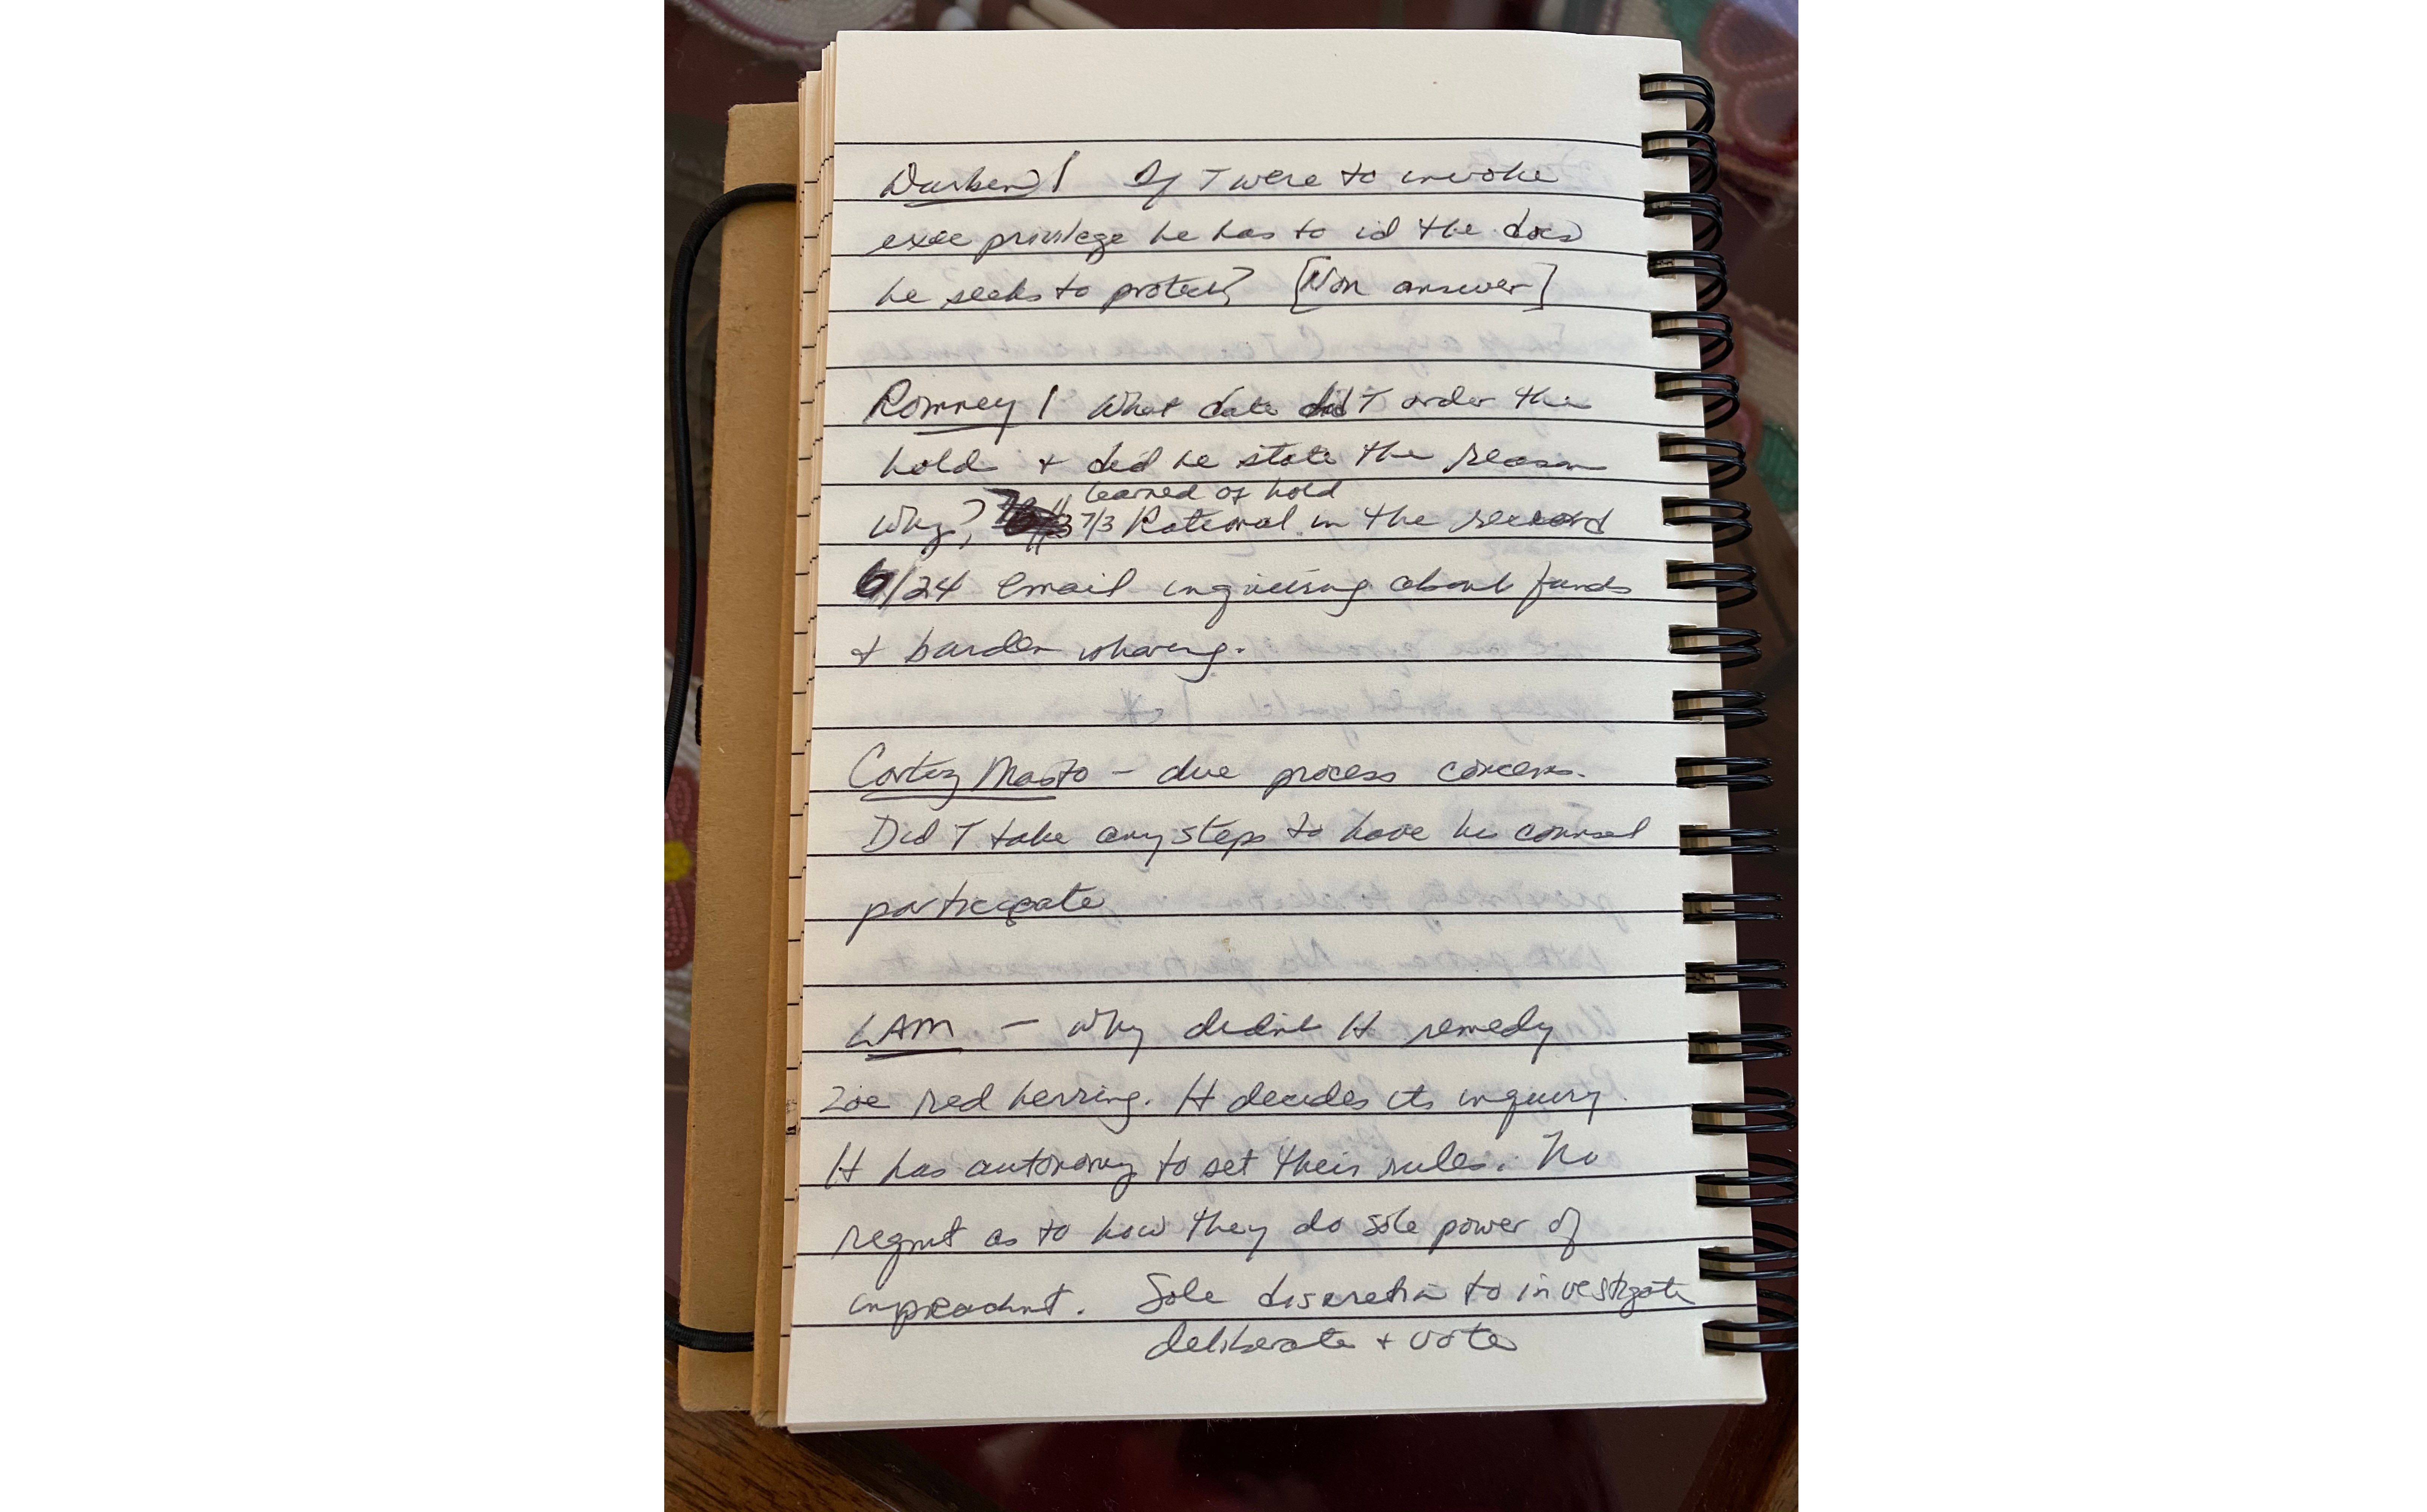 Notes used by Sen. Lisa Murkowski (R-AK) during the impeachment trial of US President Donald J. Trump.